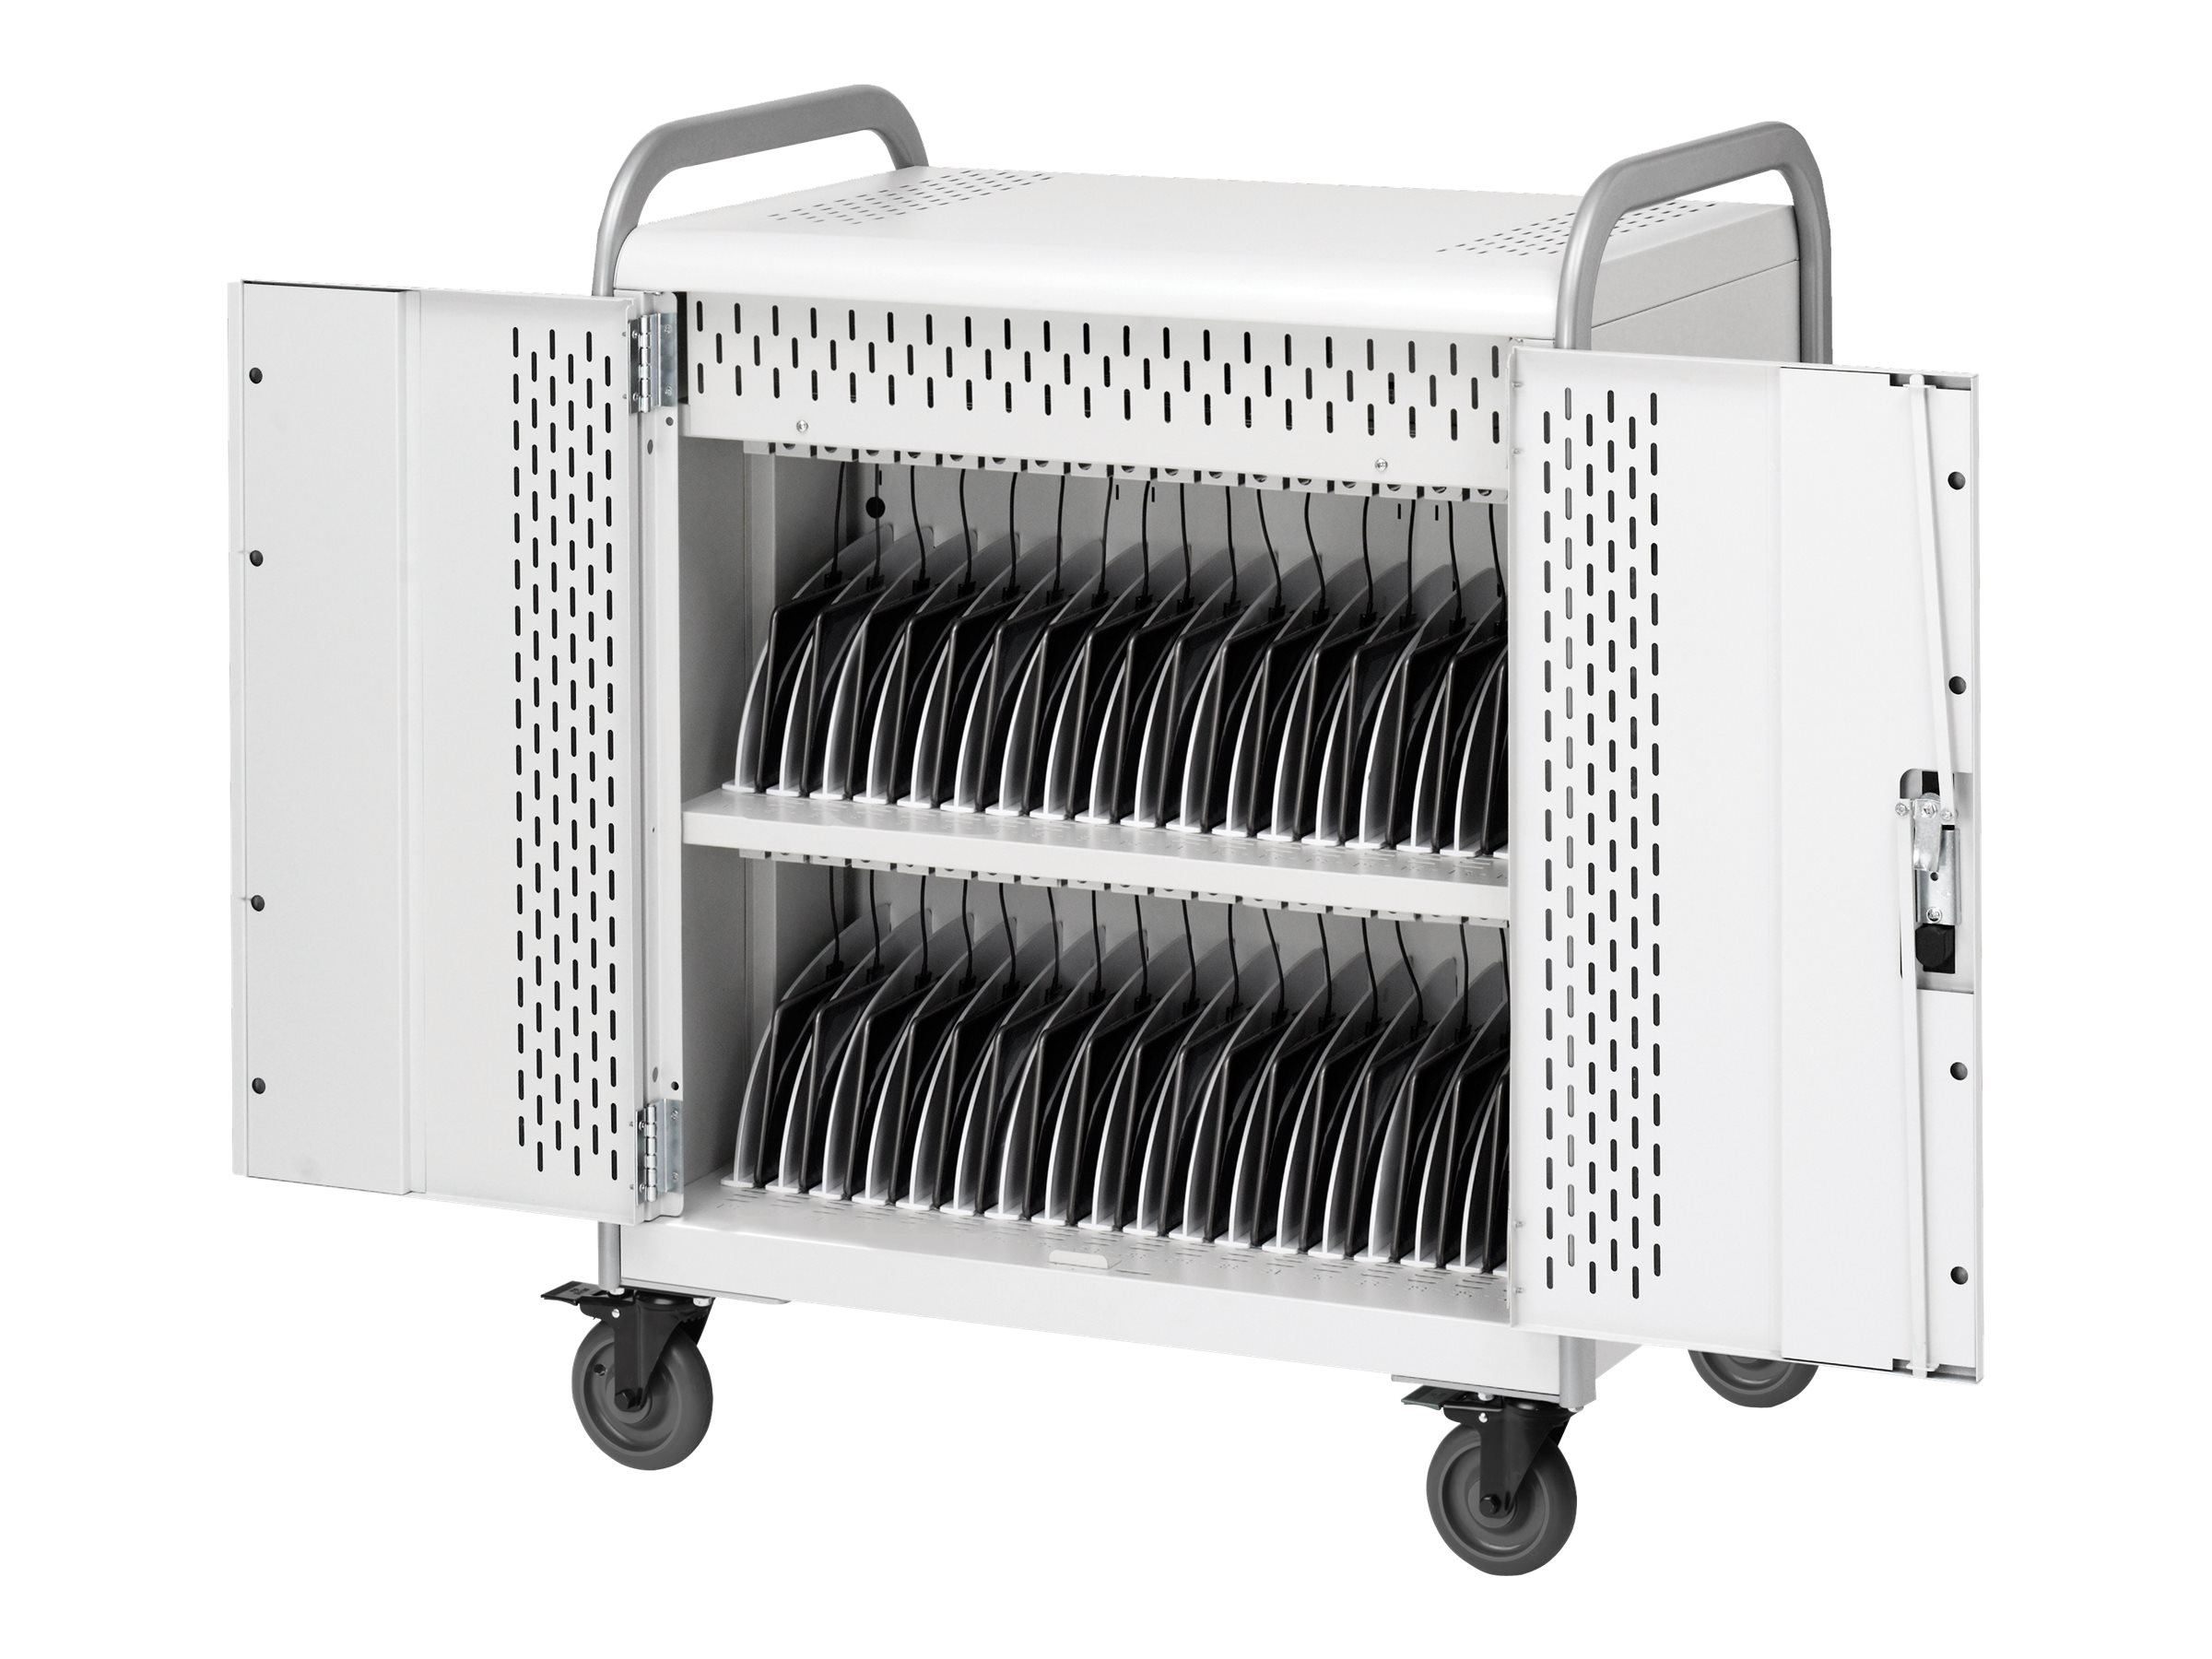 Bretford Manufacturing 36-Unit Chromebook Tablet Cart, MDMTAB36-SPLOCK, 31795248, Computer Carts